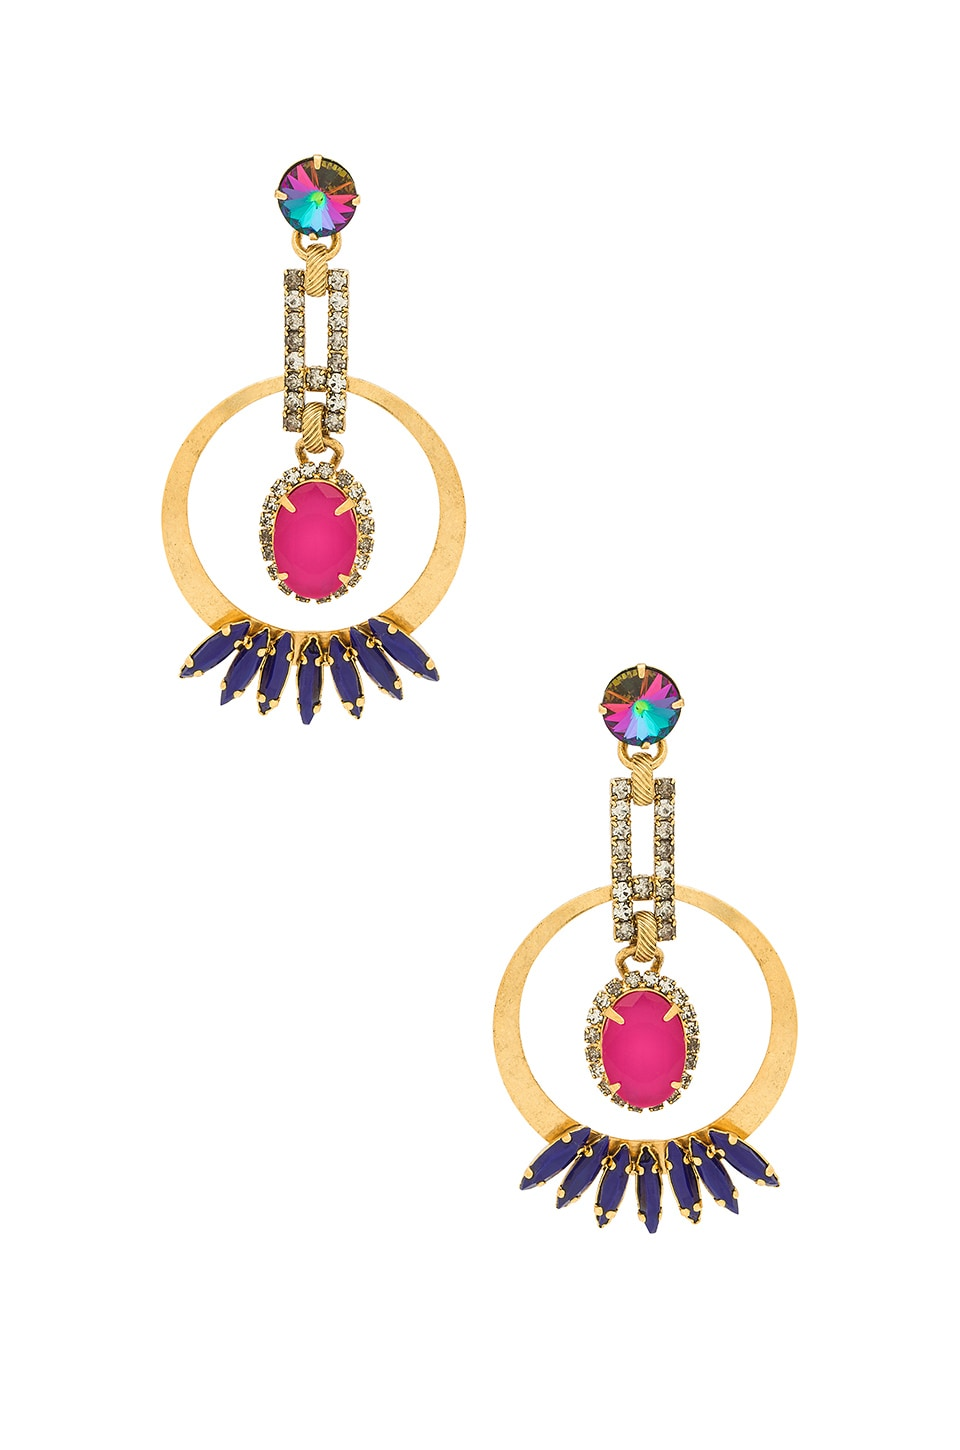 ELIZABETH COLE REESE EARRINGS